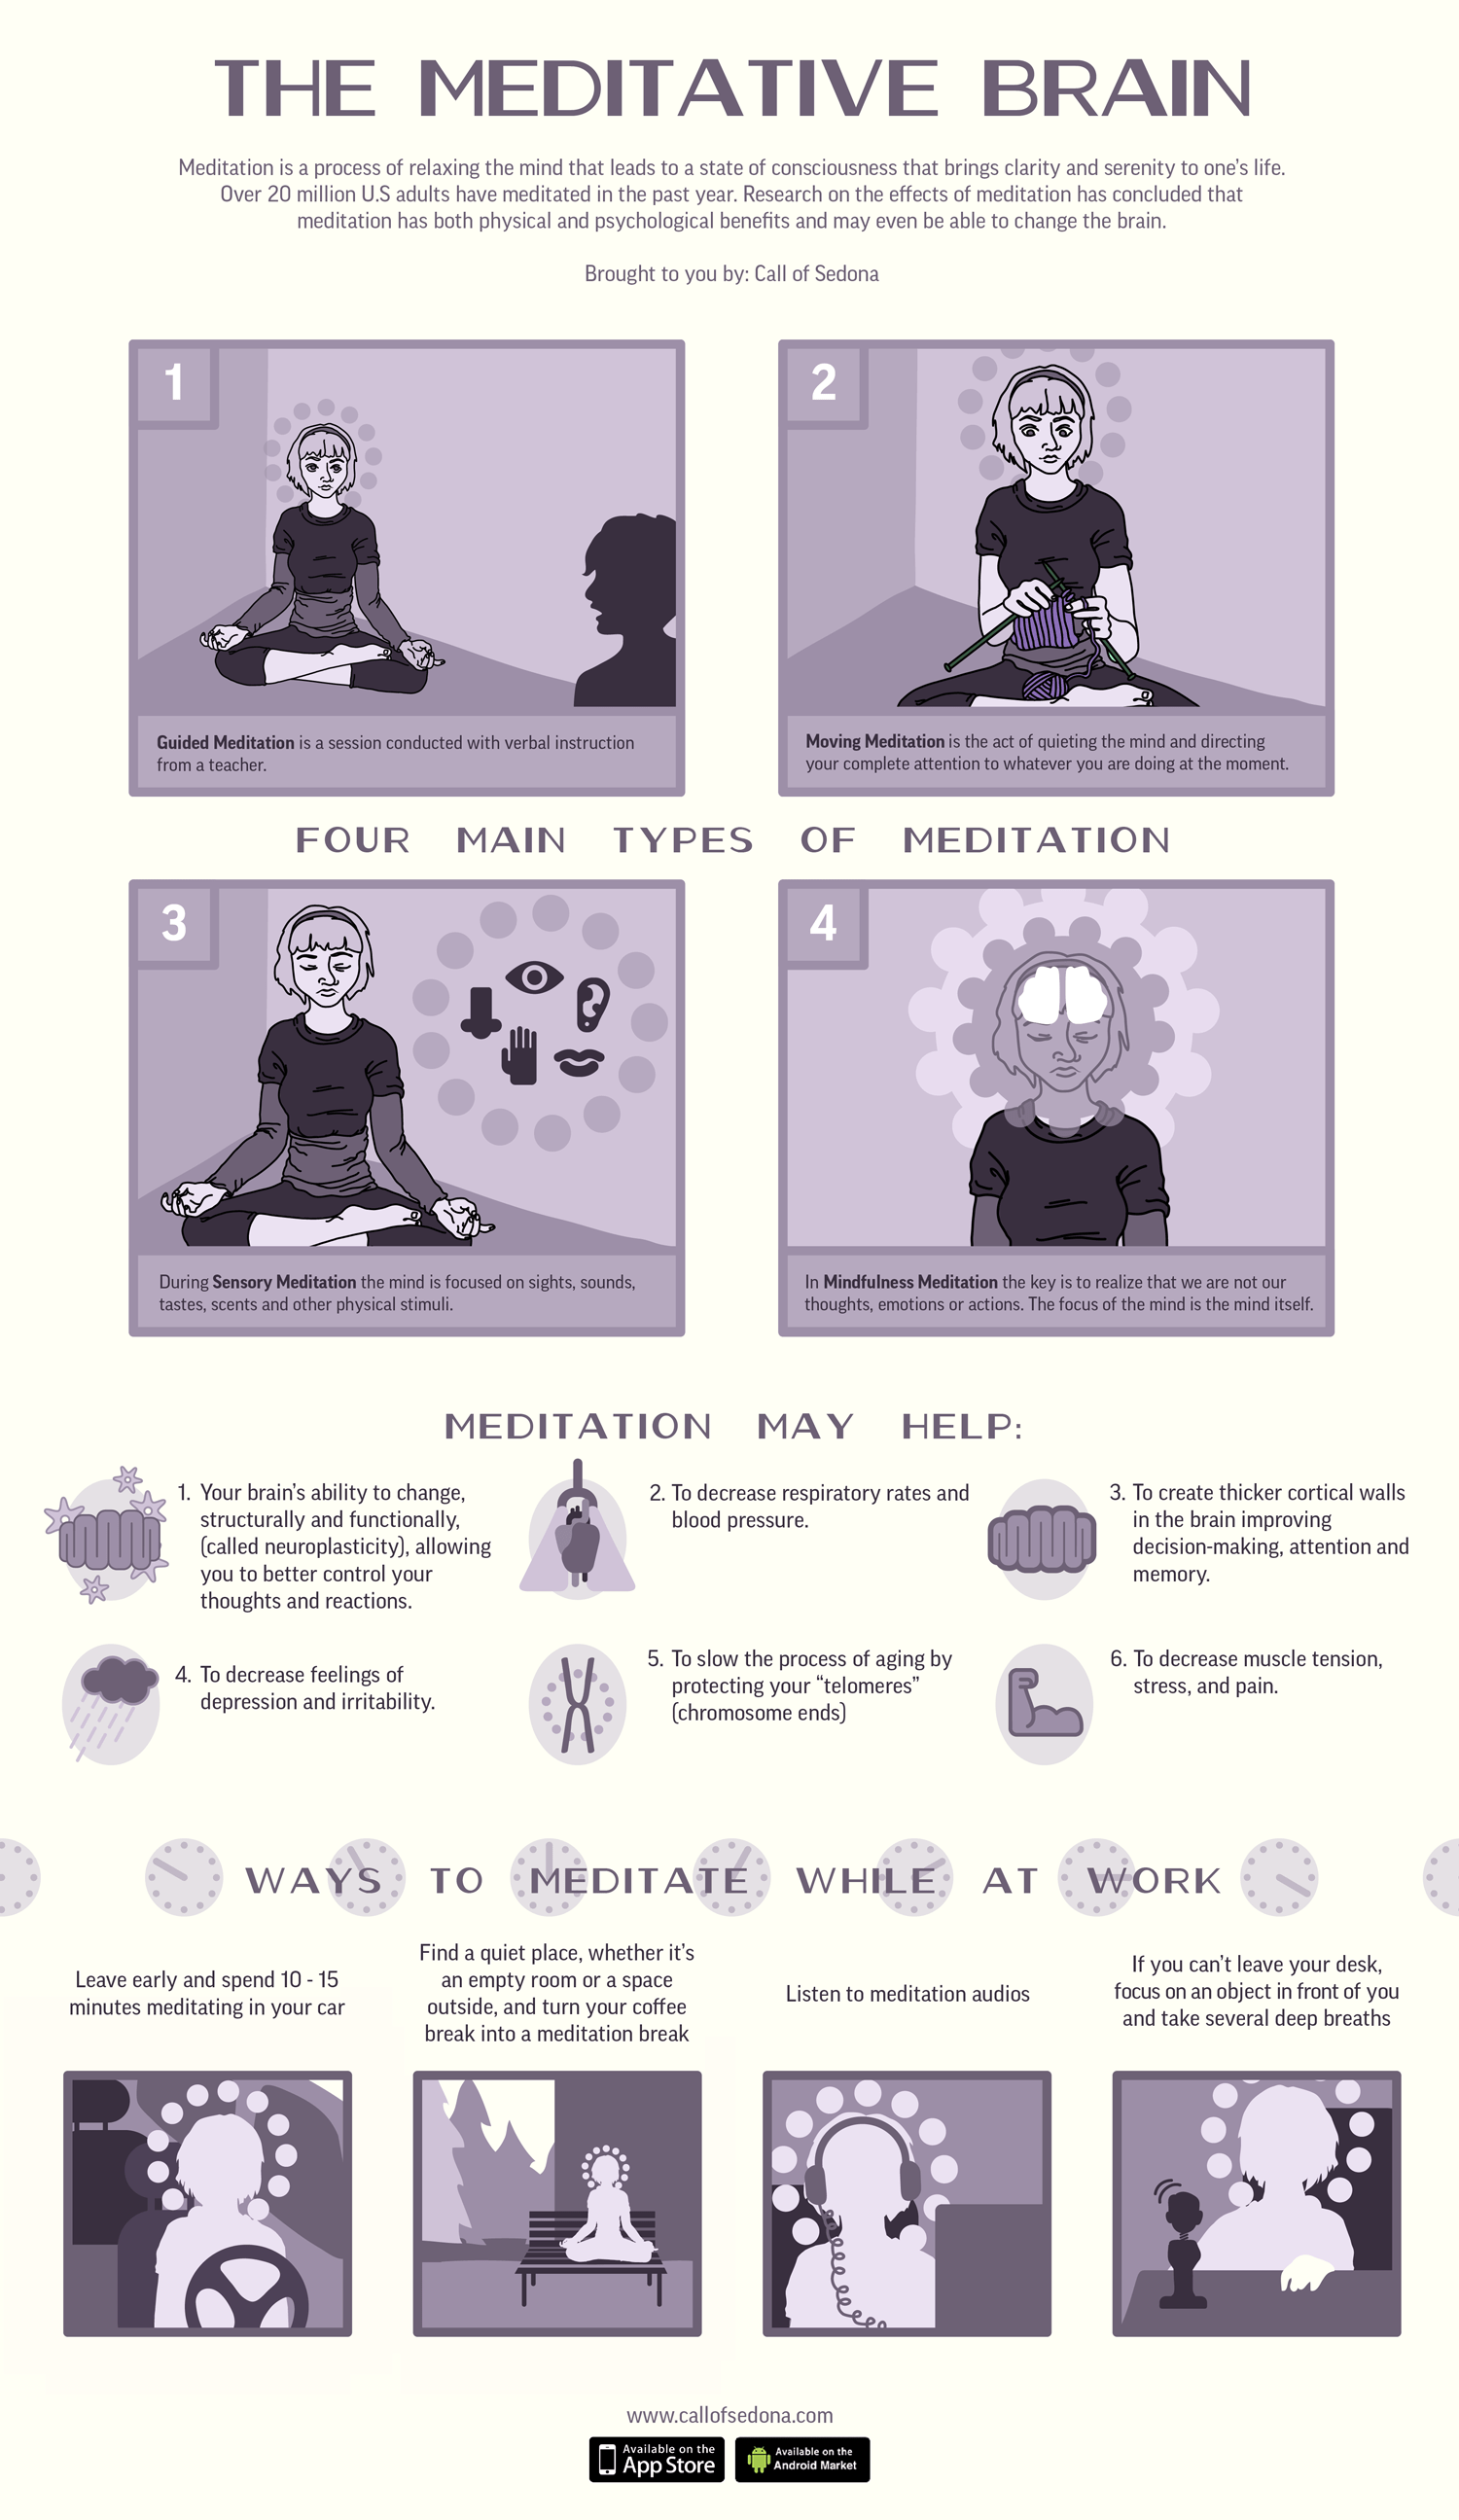 The Meditative Brain